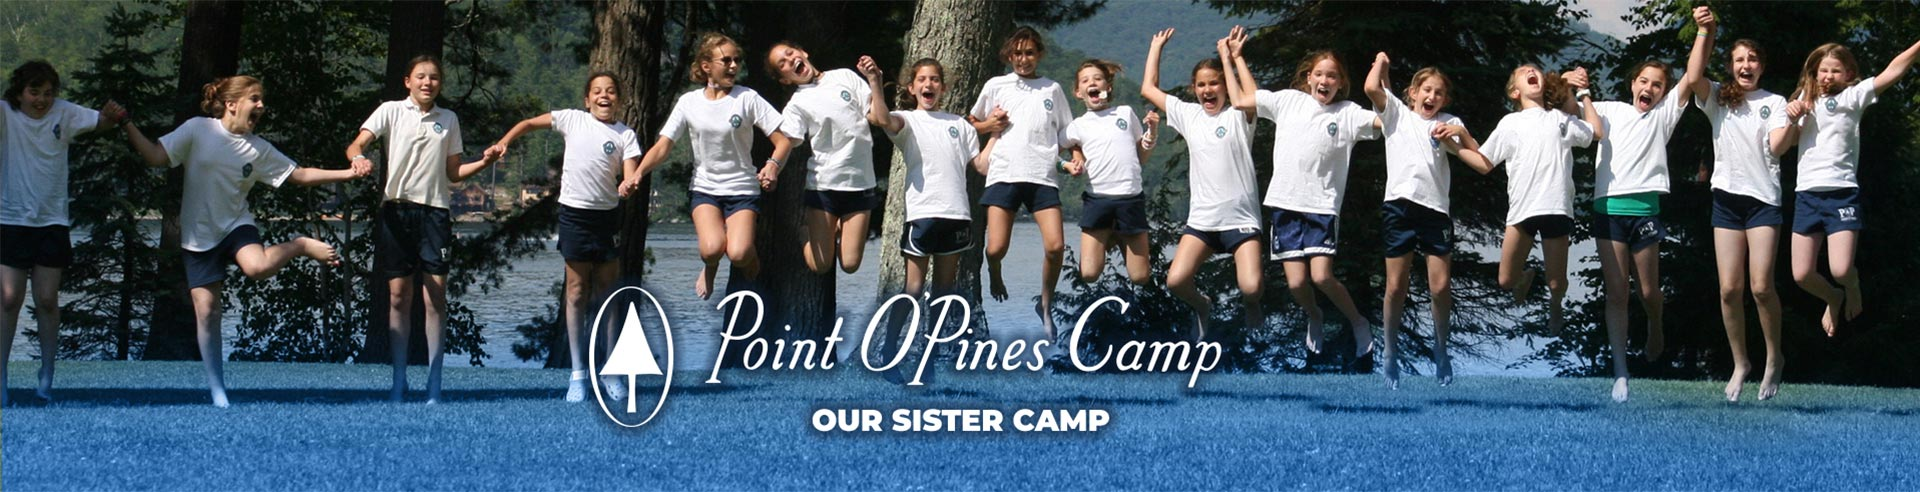 Learn About Our Sister Camp: Point O'Pines Camp For Girls